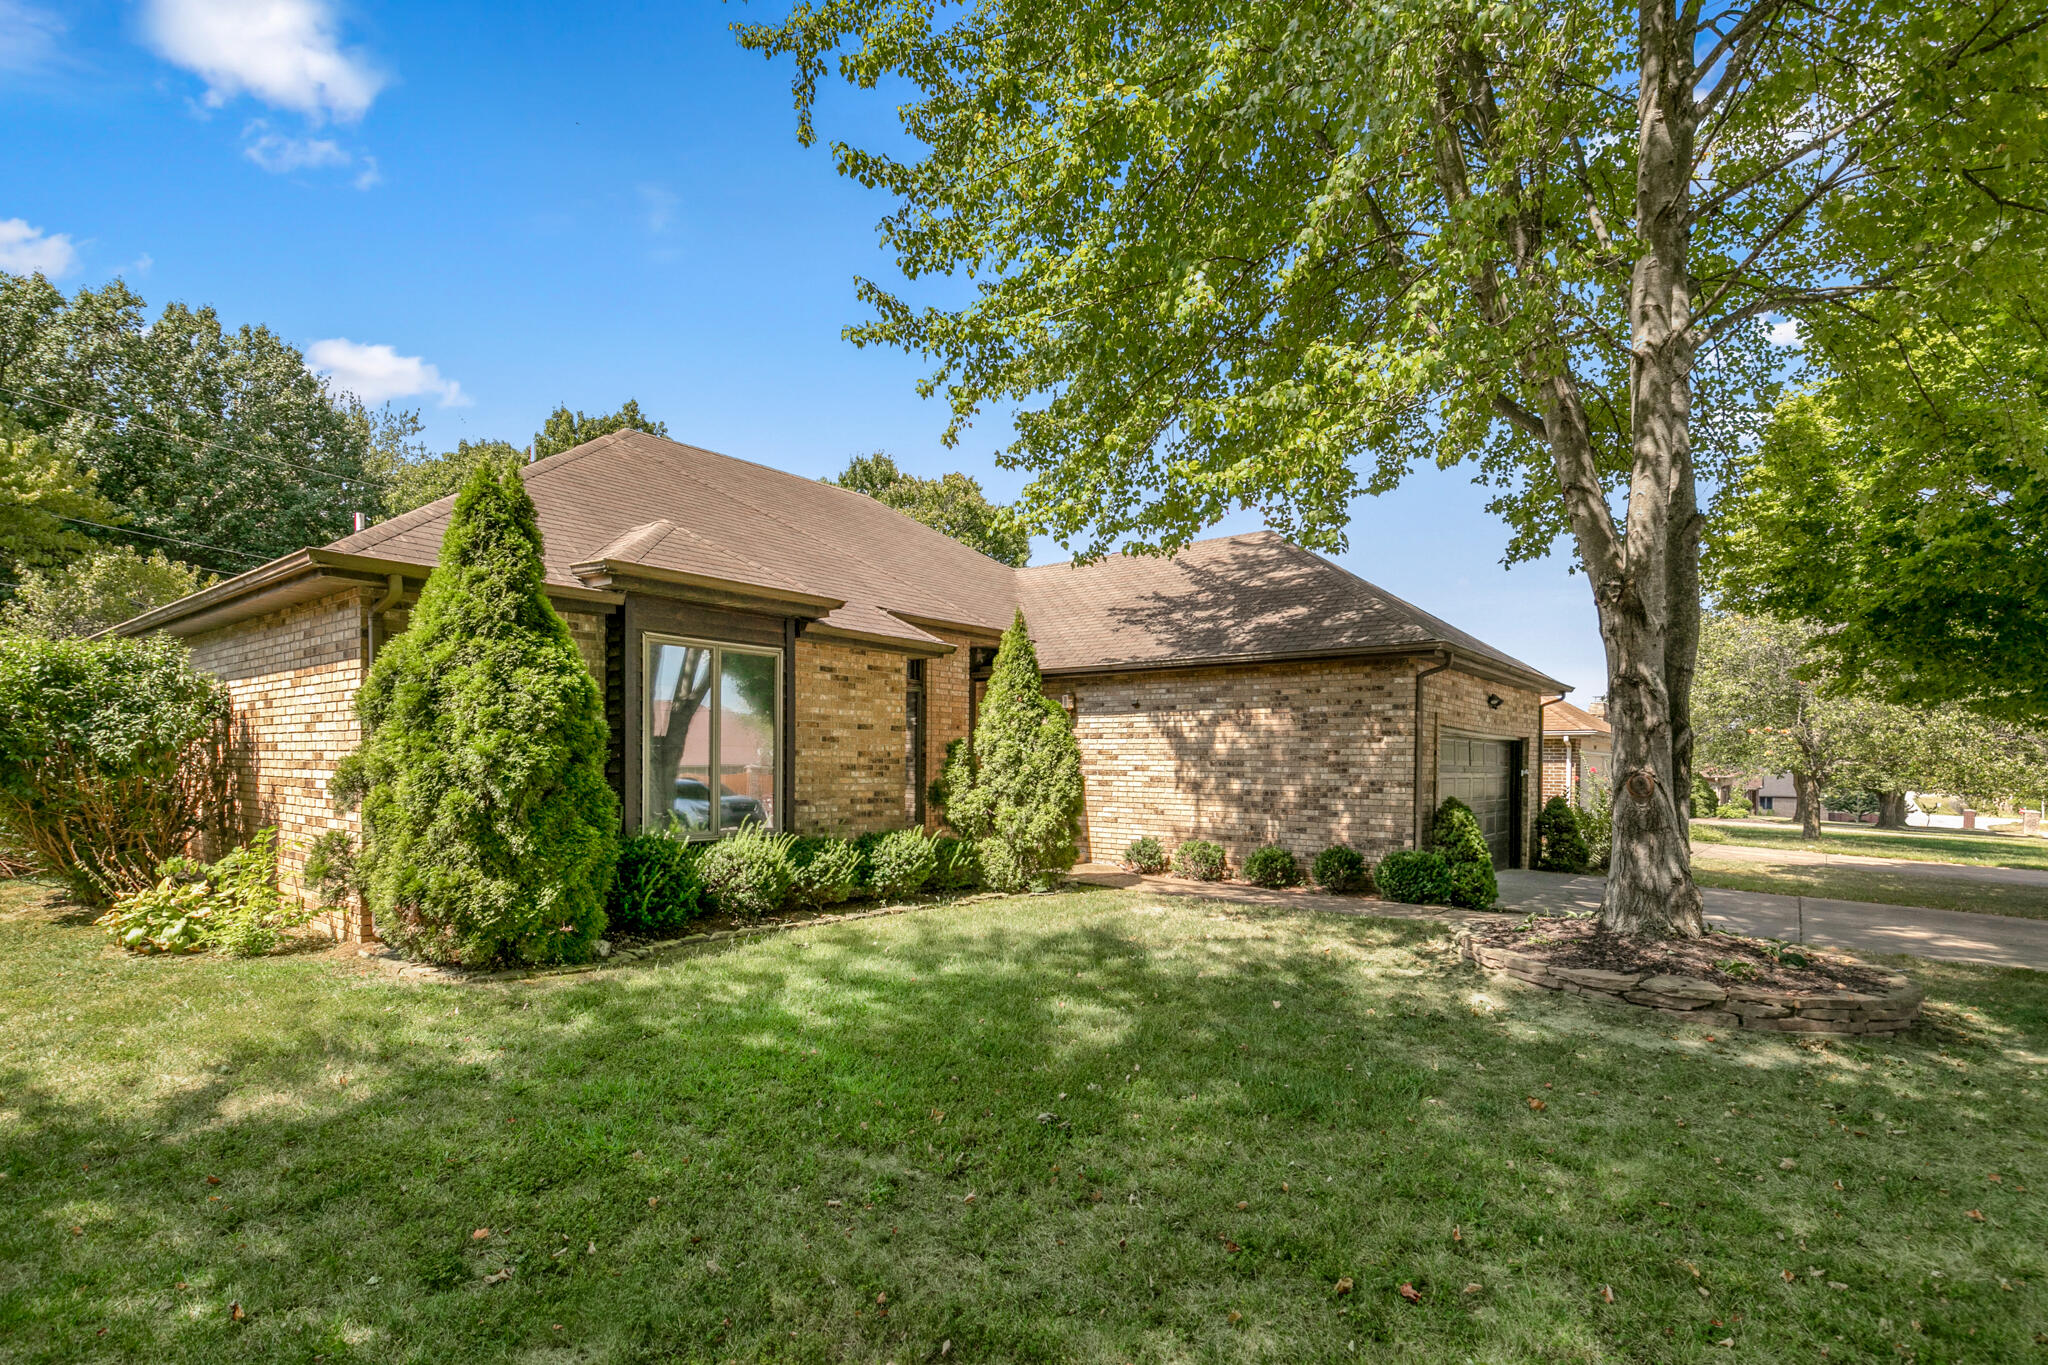 1917 South Forrest Heights Avenue, Springfield, Missouri 65809